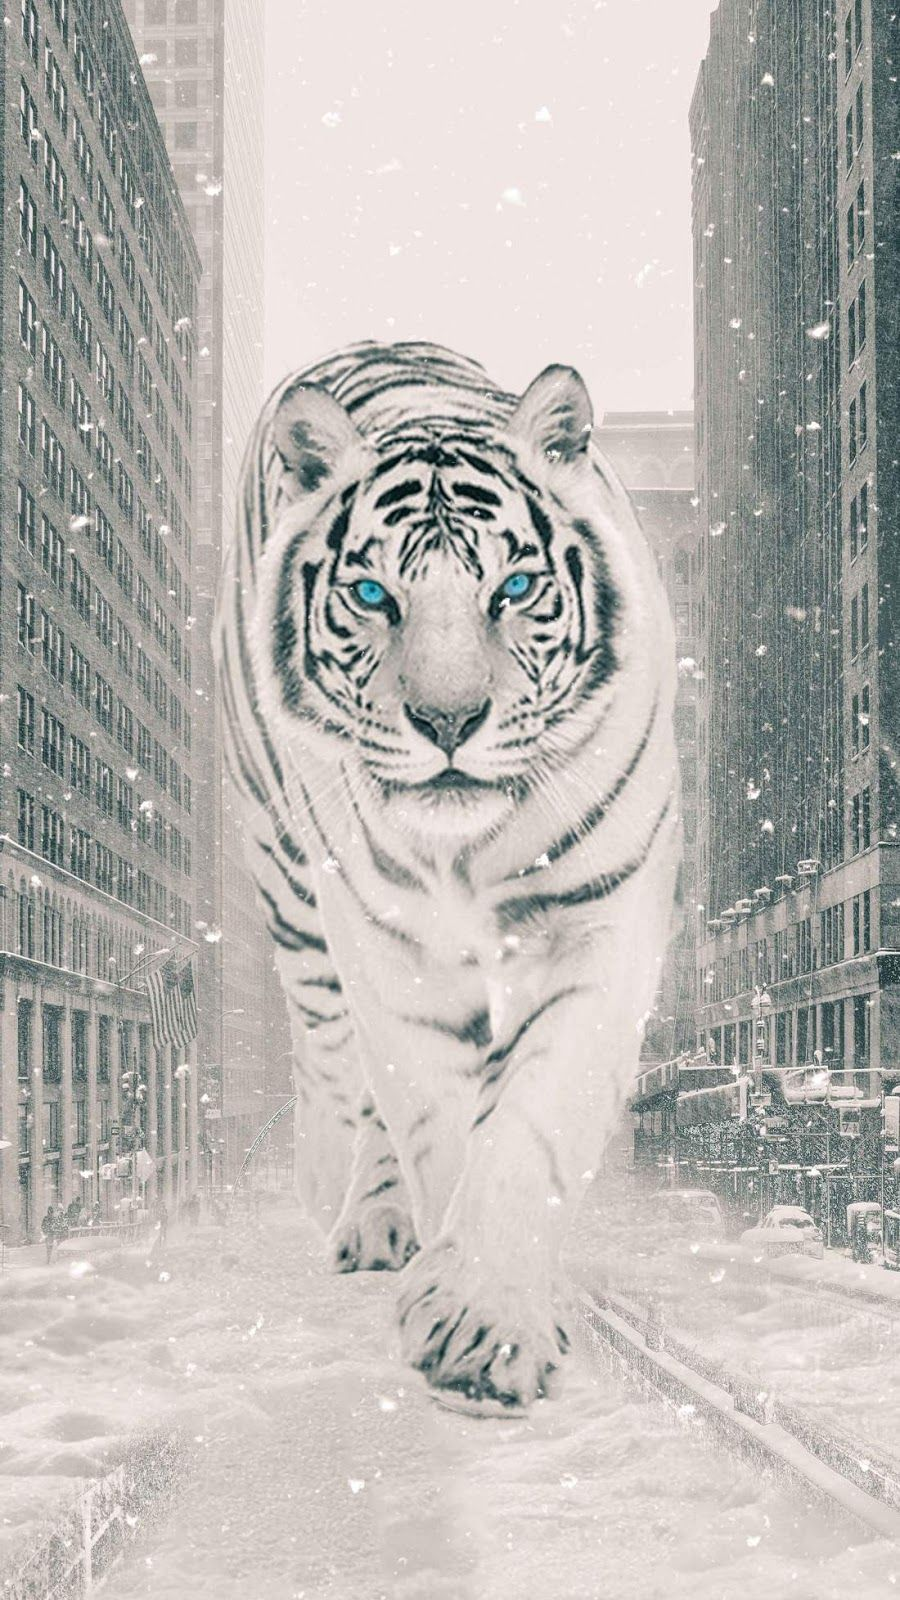 White Tiger Urban Tiger Wallpaper Tiger Wallpaper Iphone White